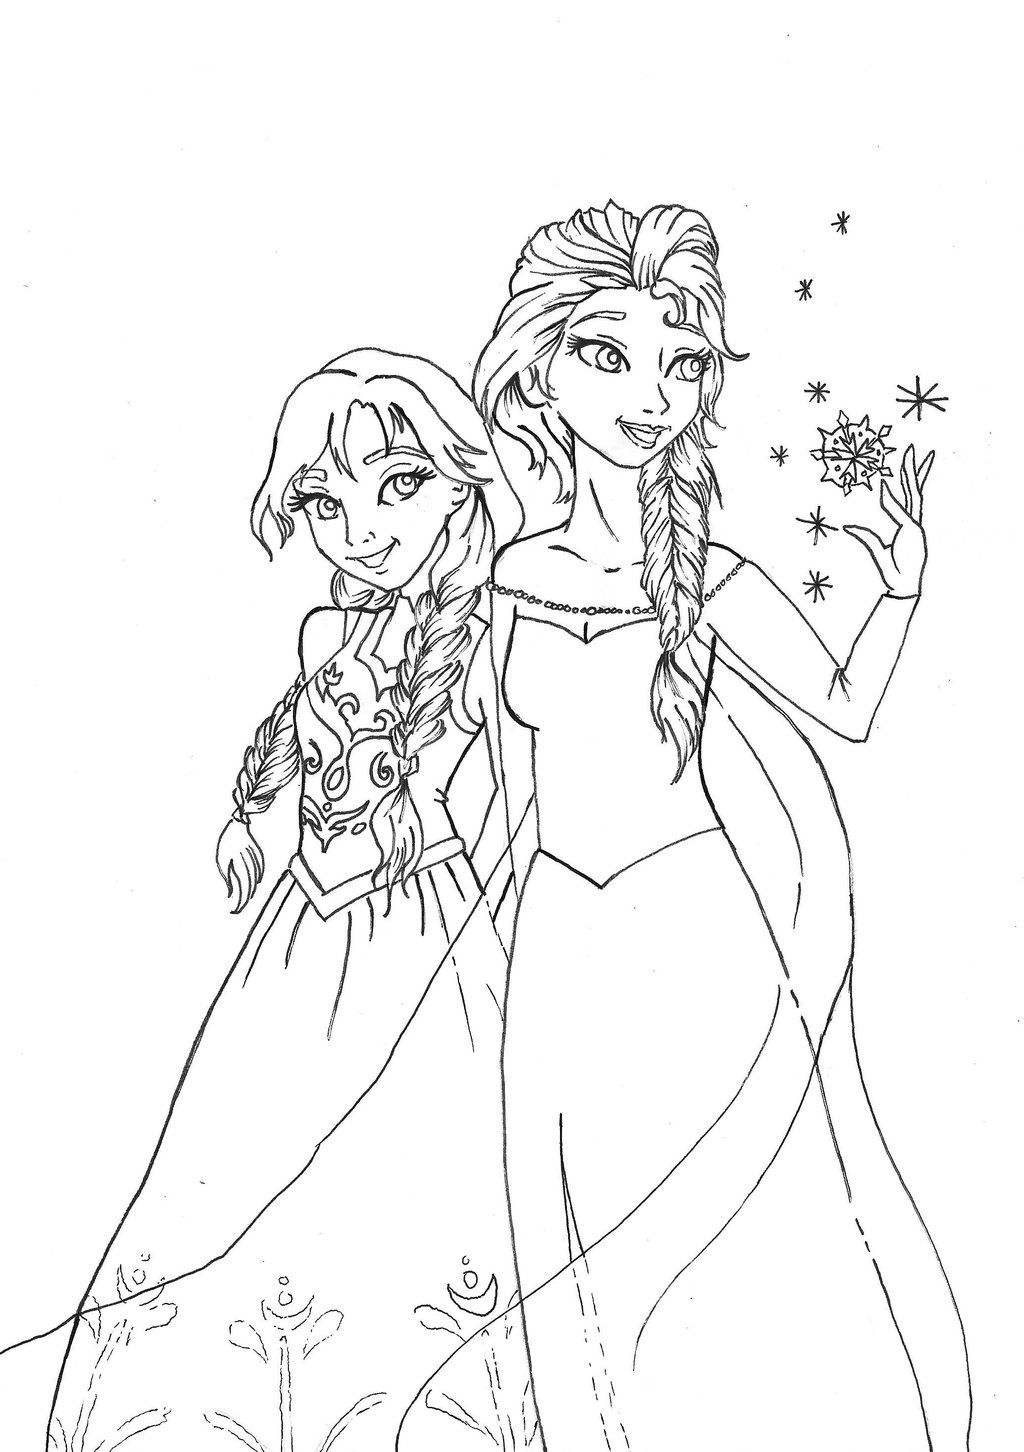 Do You Wanna Build A Snowman Anna And Elsa By Momosangel On Deviantart Frozen Coloring Pages Christmas Coloring Pages Frozen Coloring